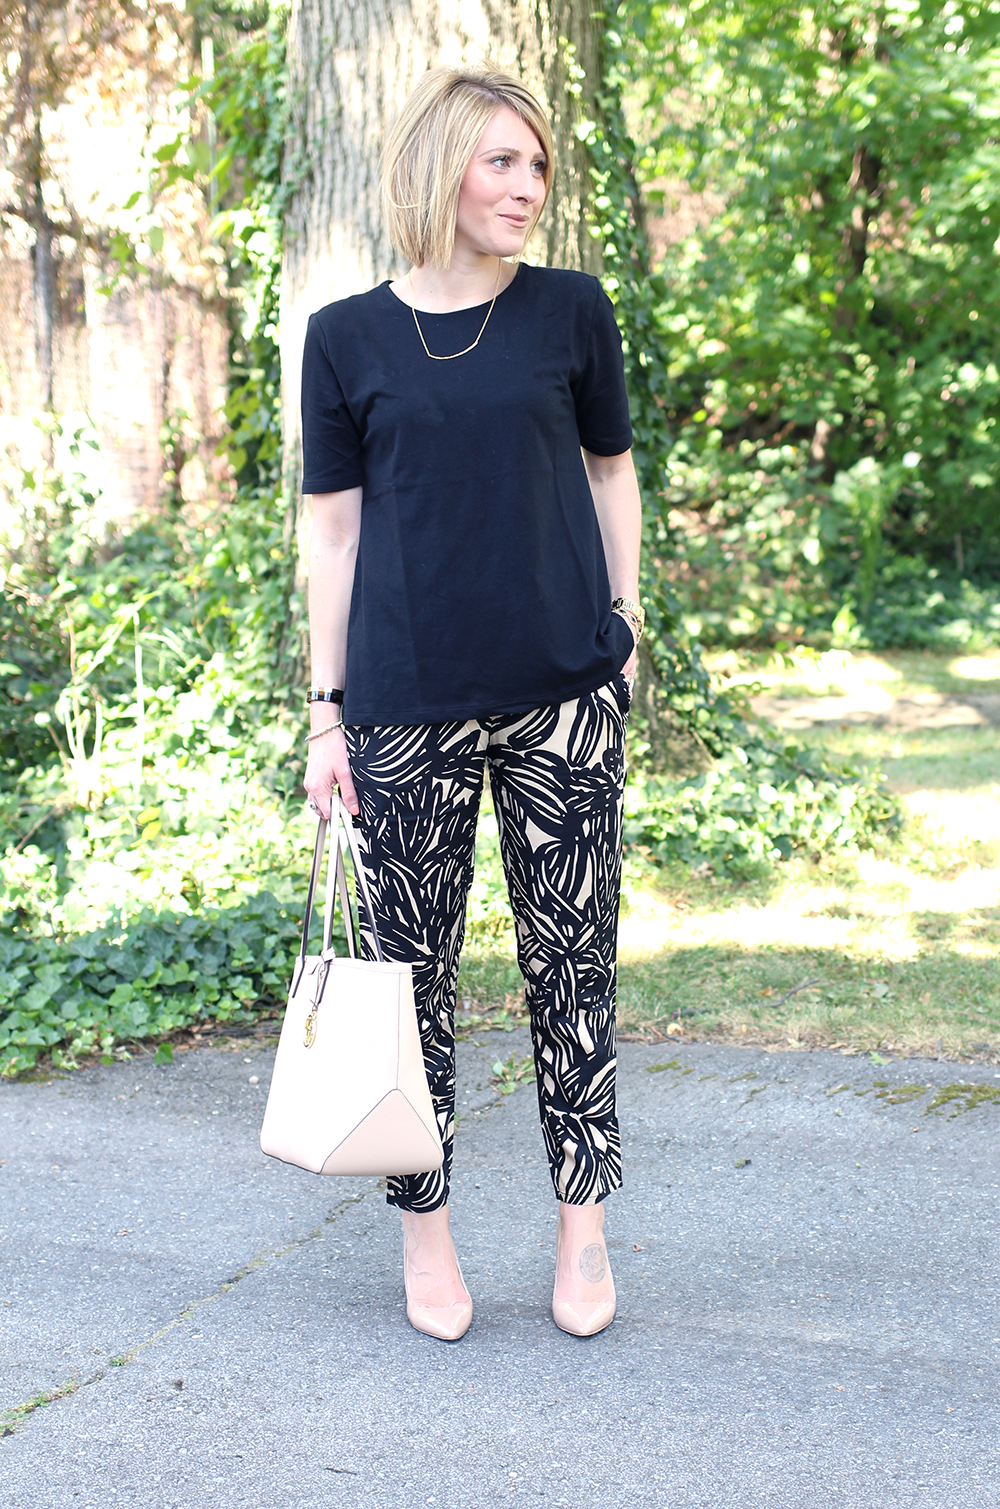 Comfy Nude Heels, Everyday Work Outfit, Patterned Jogger Pants